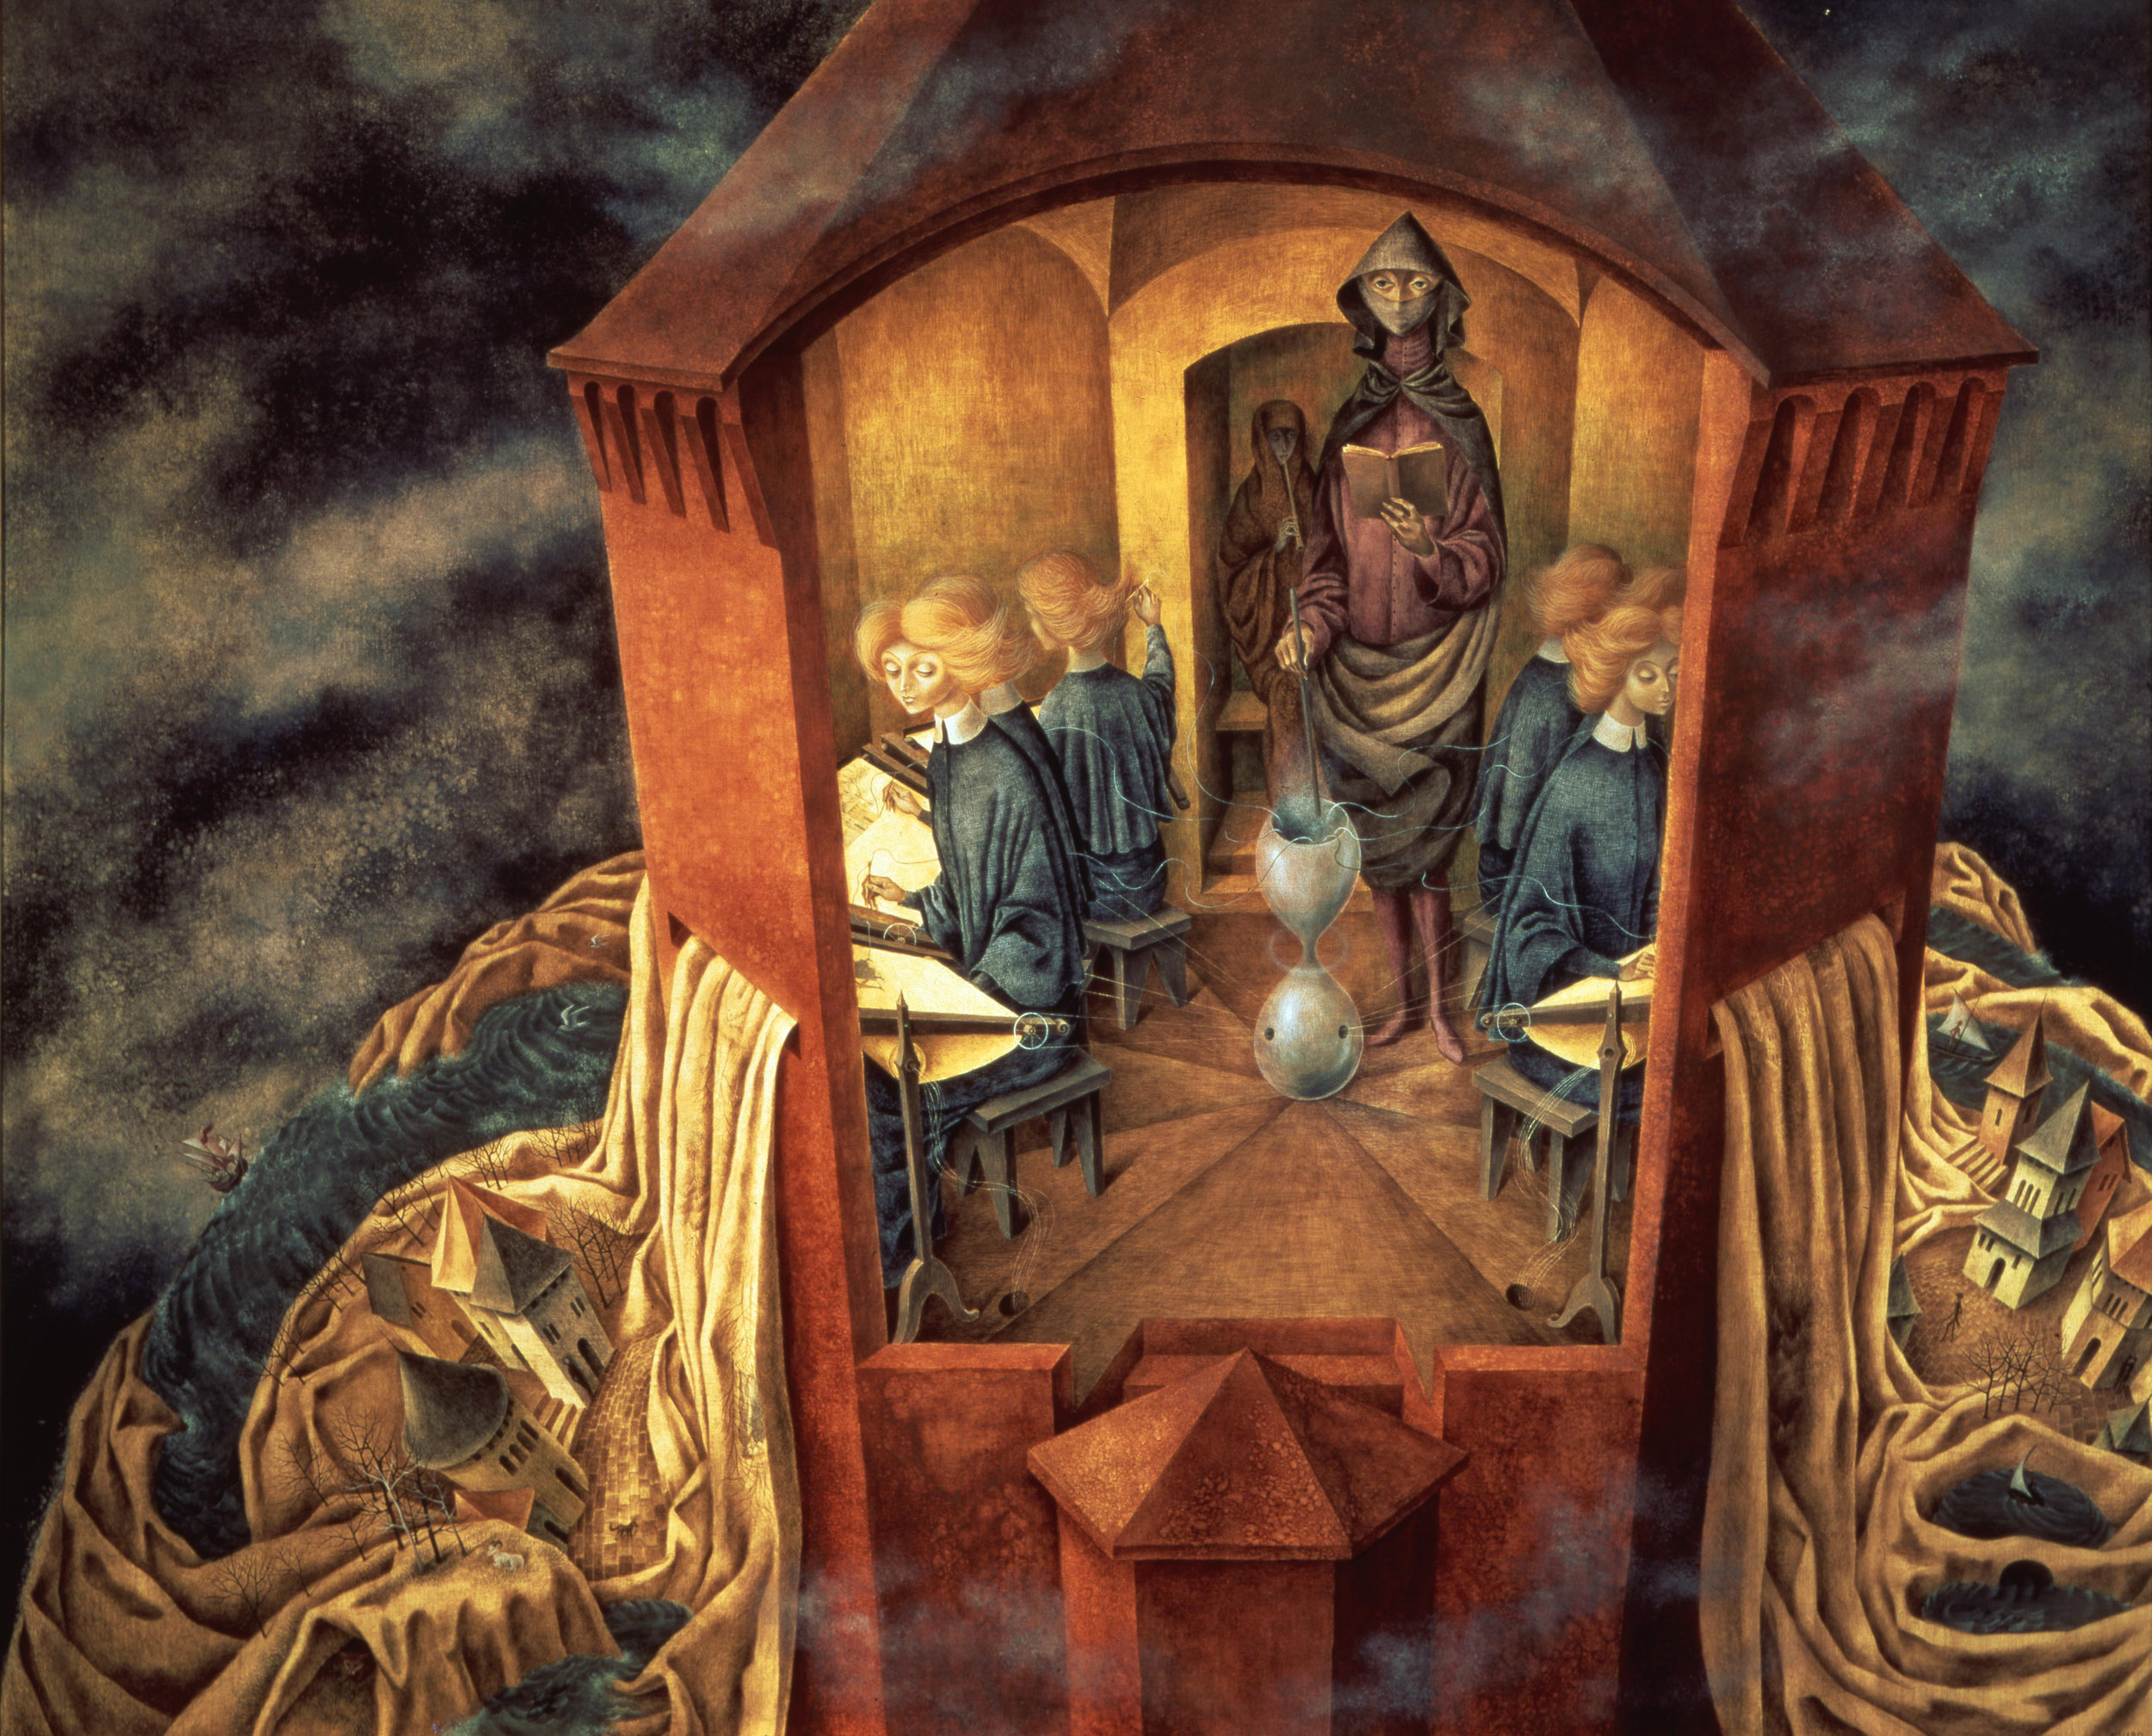 Remedios Varo,  Bordando el manto terrestre (Embroidering the Earth's Mantle),  1961, Oil on masonite, 39 1/2 x 48 1/2 inches (100 x 123 cm)